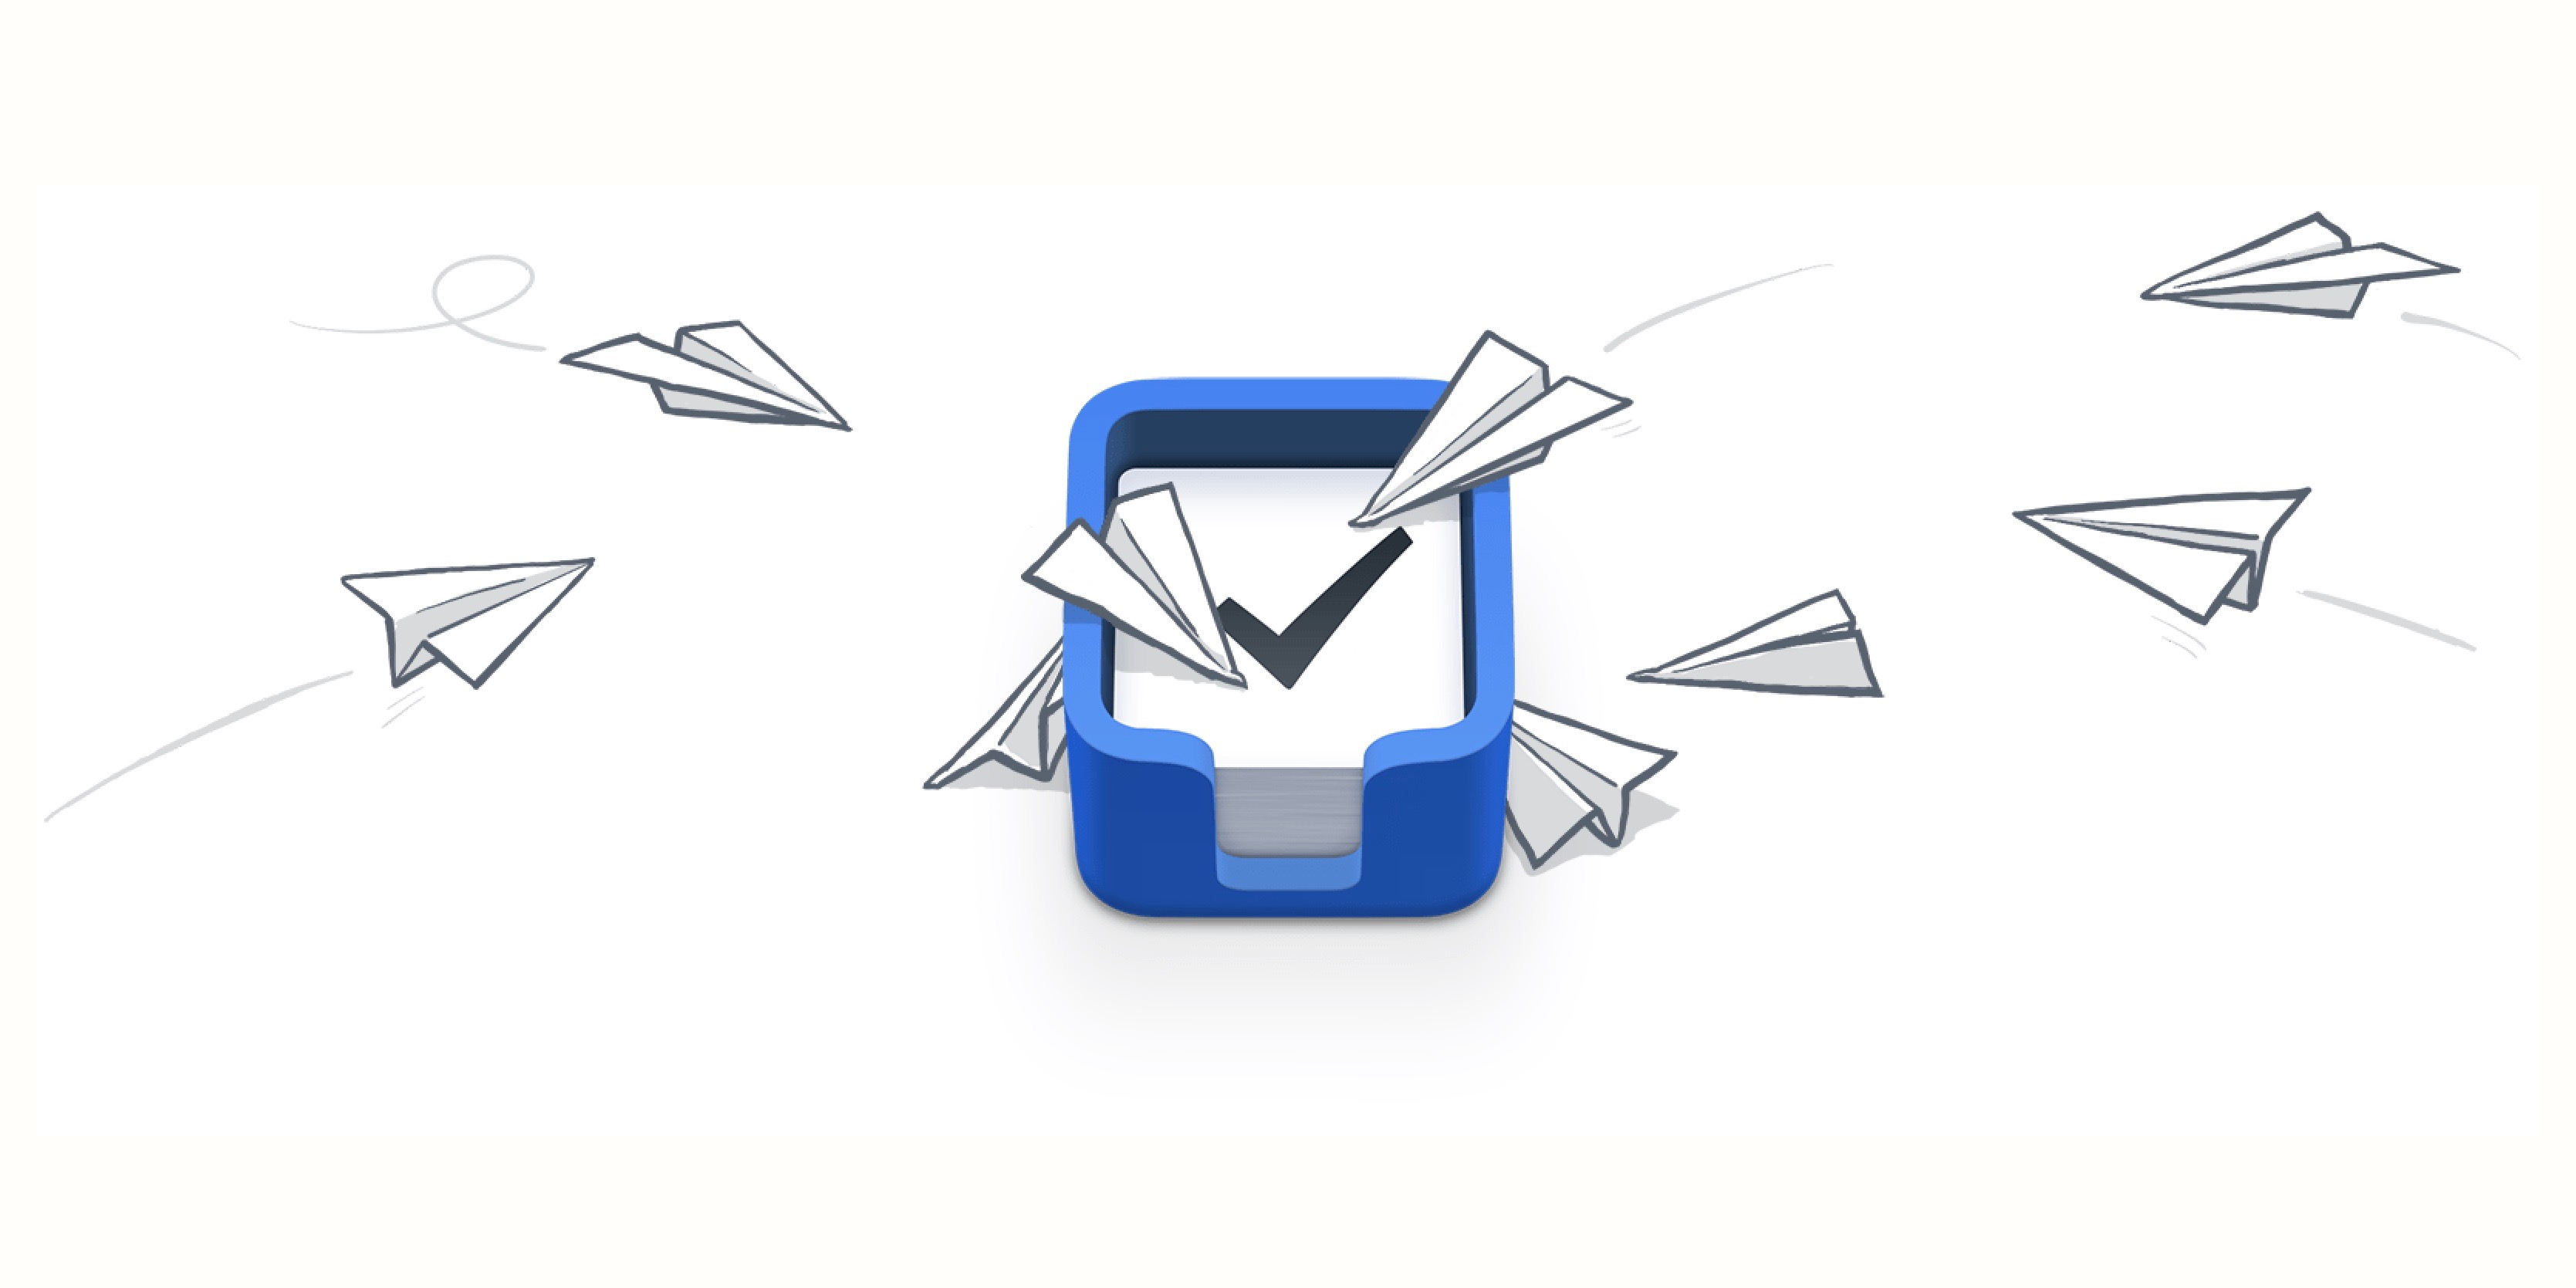 Mail to Things makes it easier to capture tasks, enables new Workflow and IFTTT actions